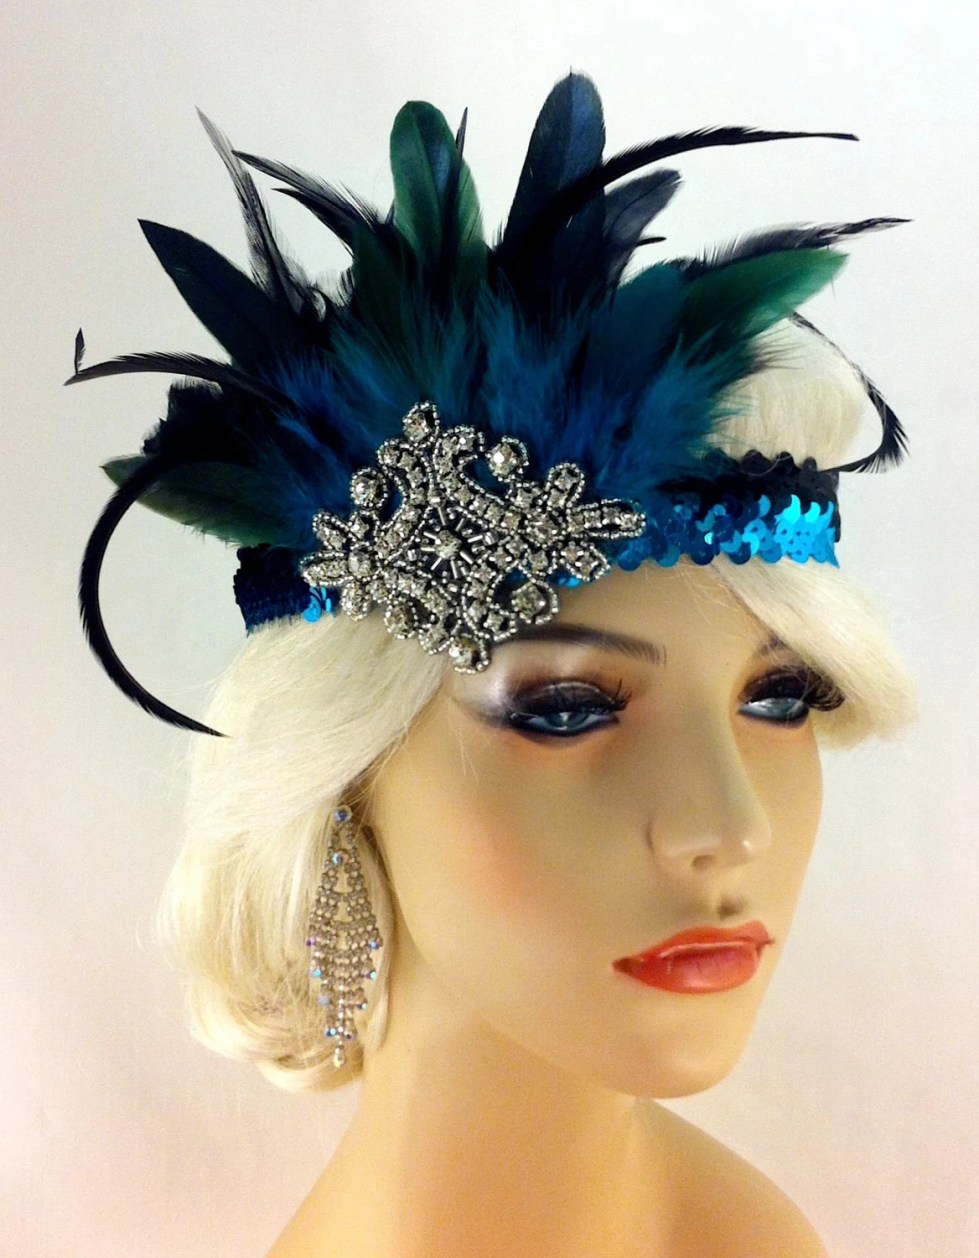 Great Gatsby Headband, Flapper Headband, Downton Abbey, Headband, 1920s Head Piece, Art Deco Headband, Turquoise and Black, Speakeasy